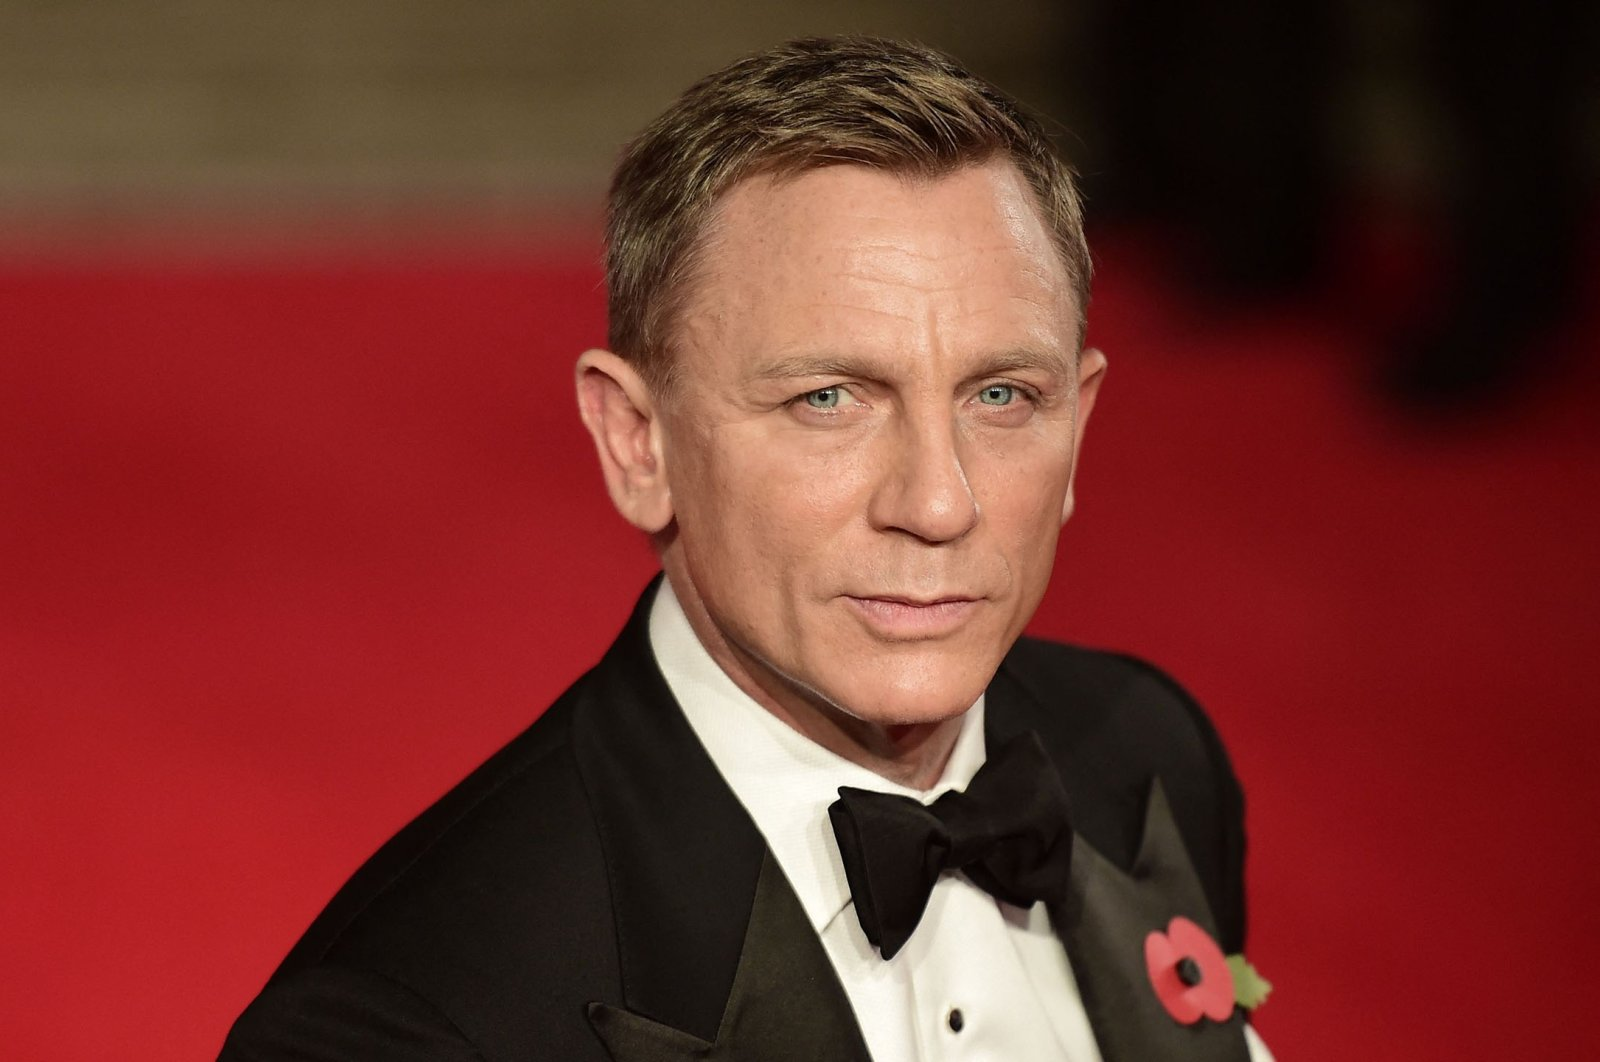 """British actor Daniel Craig arrives for the world premiere of his James Bond film """"Spectre"""" at the Royal Albert Hall in London, U.K., Oct. 26, 2015. (AFP Photo)"""